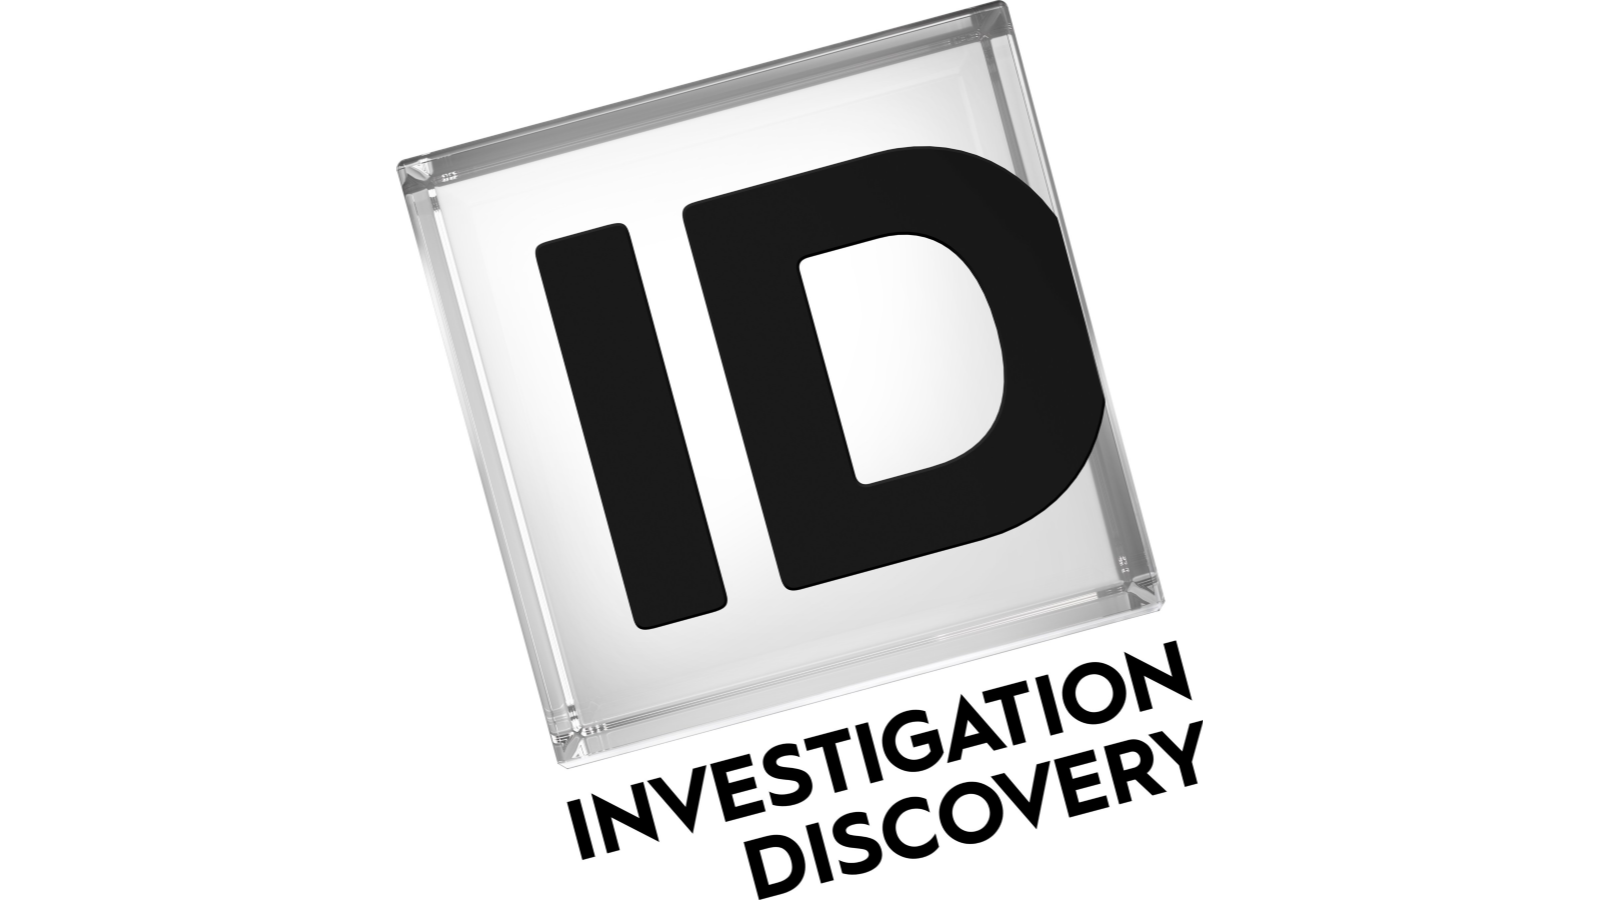 How To Watch Investigation Discovery Without Cable Find